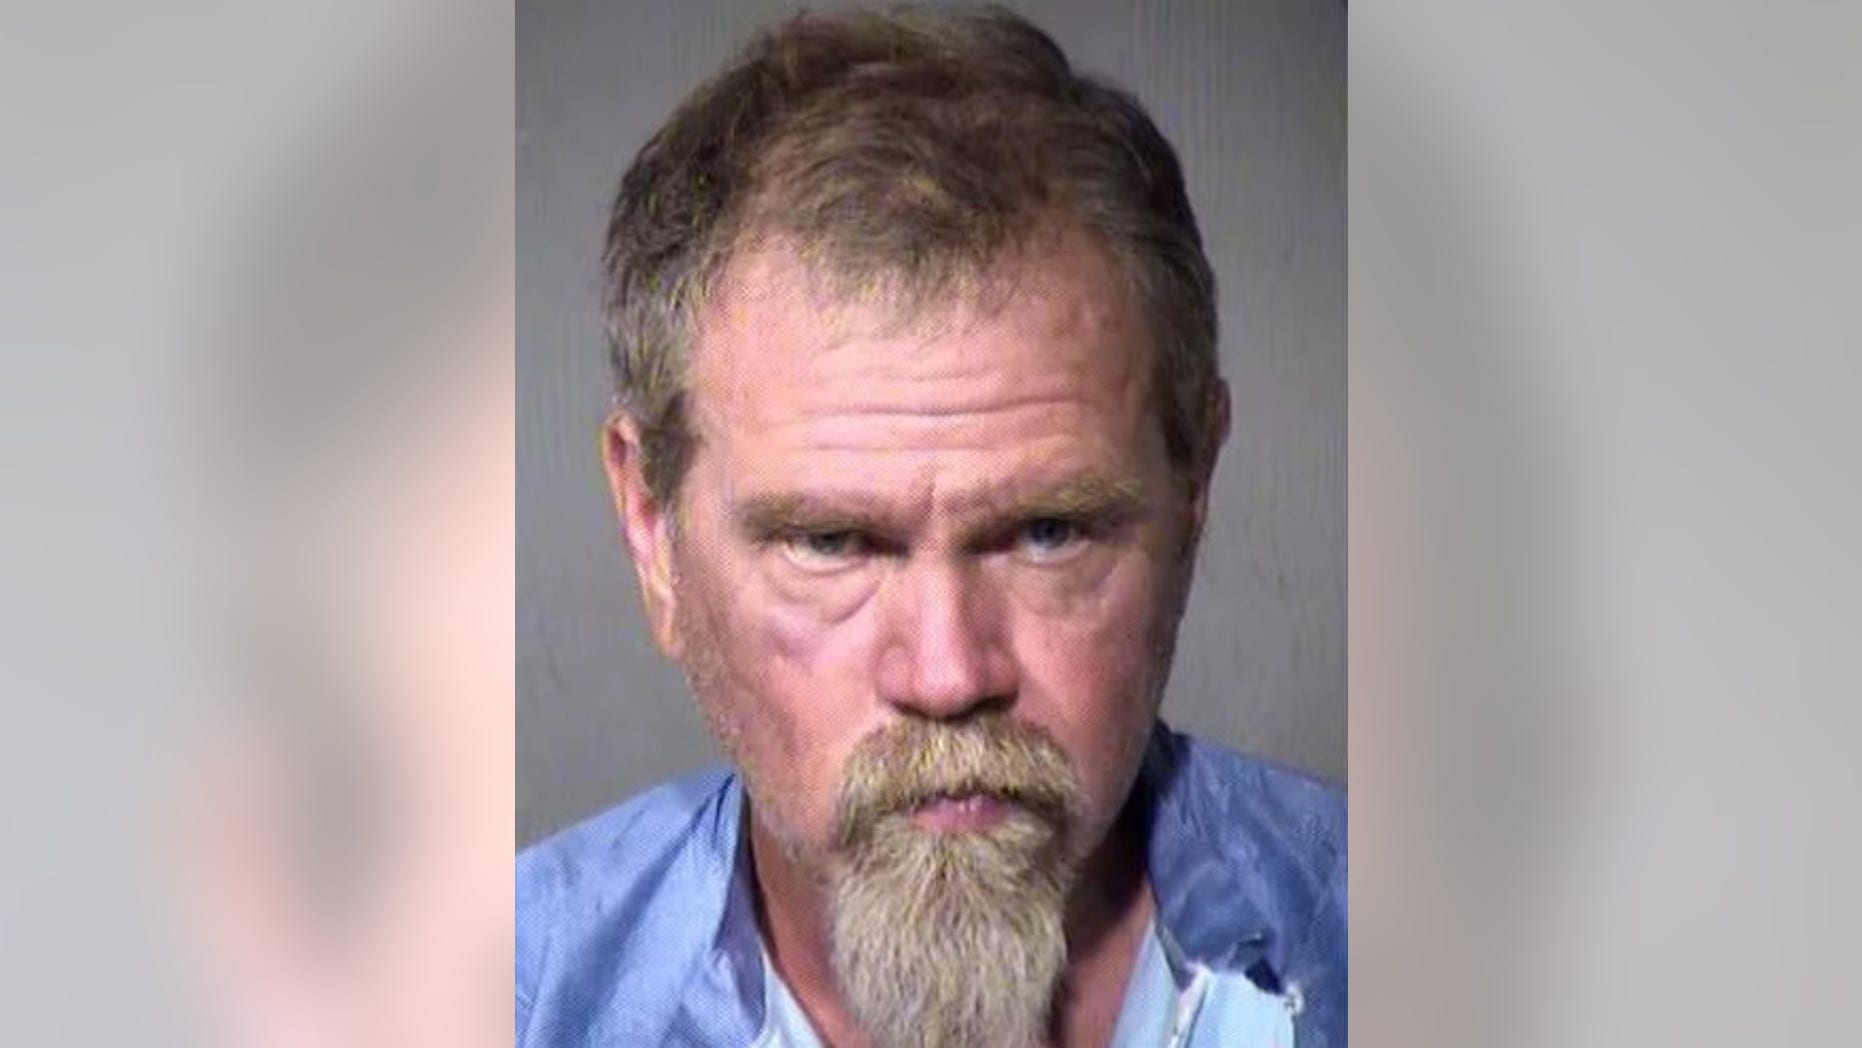 Matthew David Hall, 52, has been charged after authorities claimed he moved a deceased man's body and put his head in a bucket for preservation.